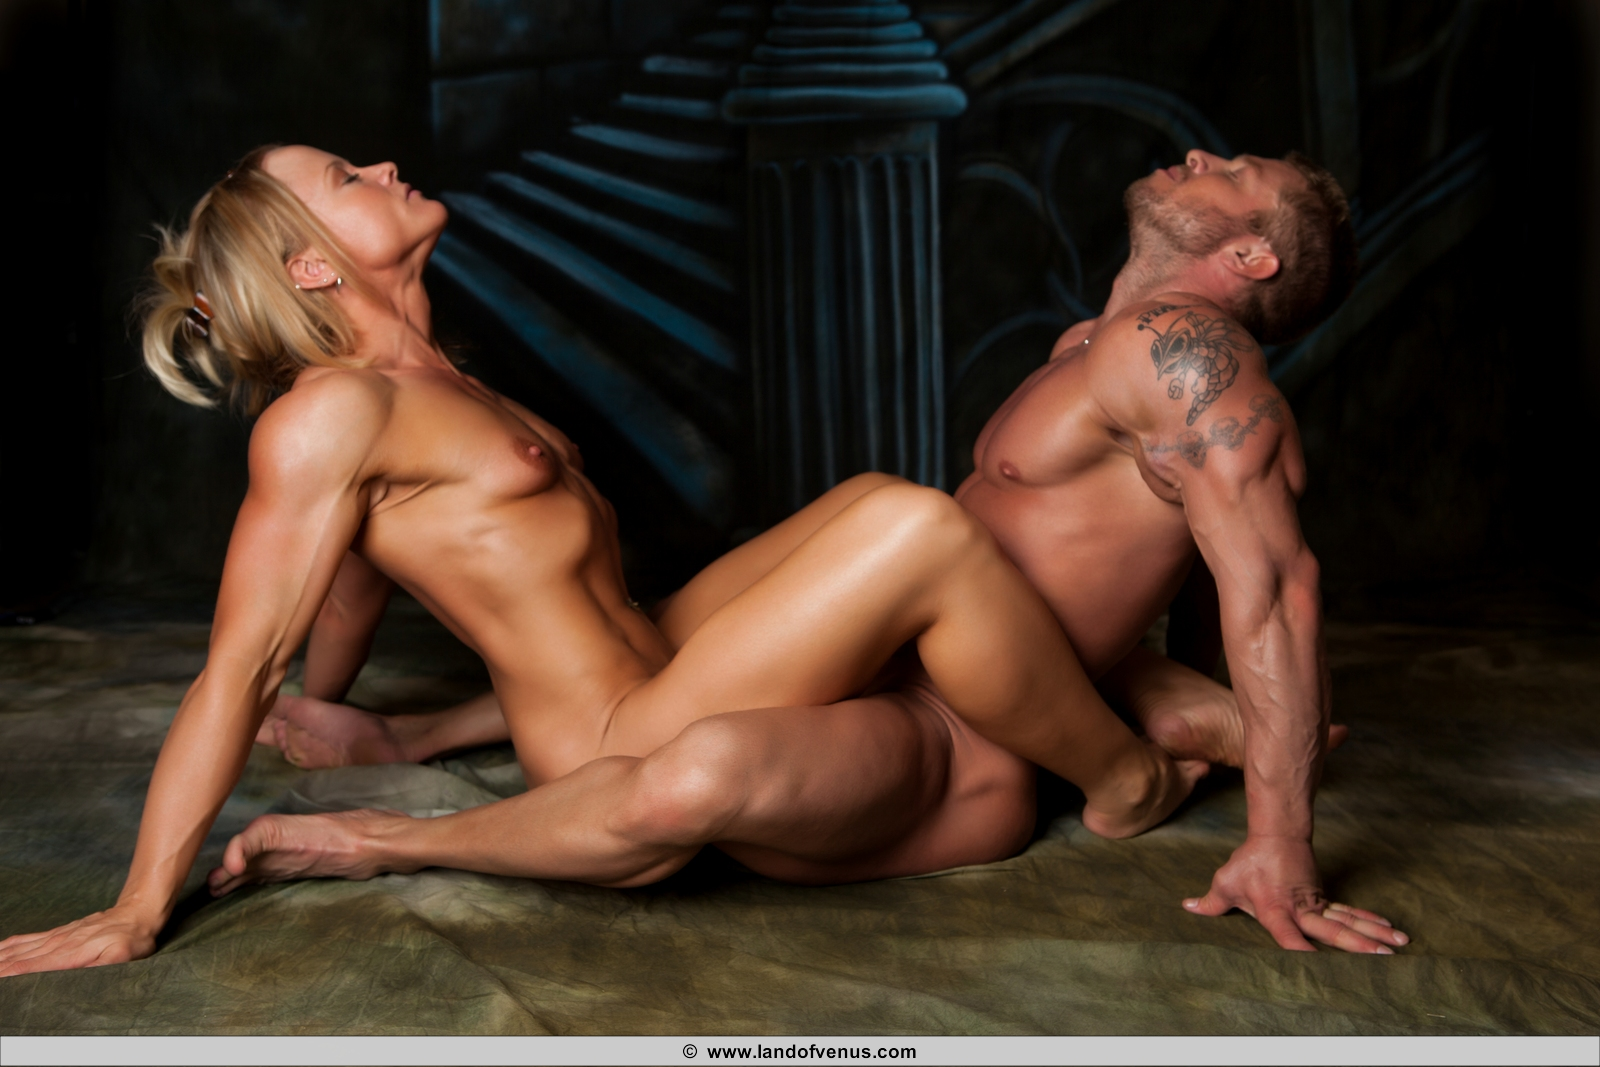 Female bodybuilder having sex 2  female bodybuilder having sex. Female Bodybuilder having sex